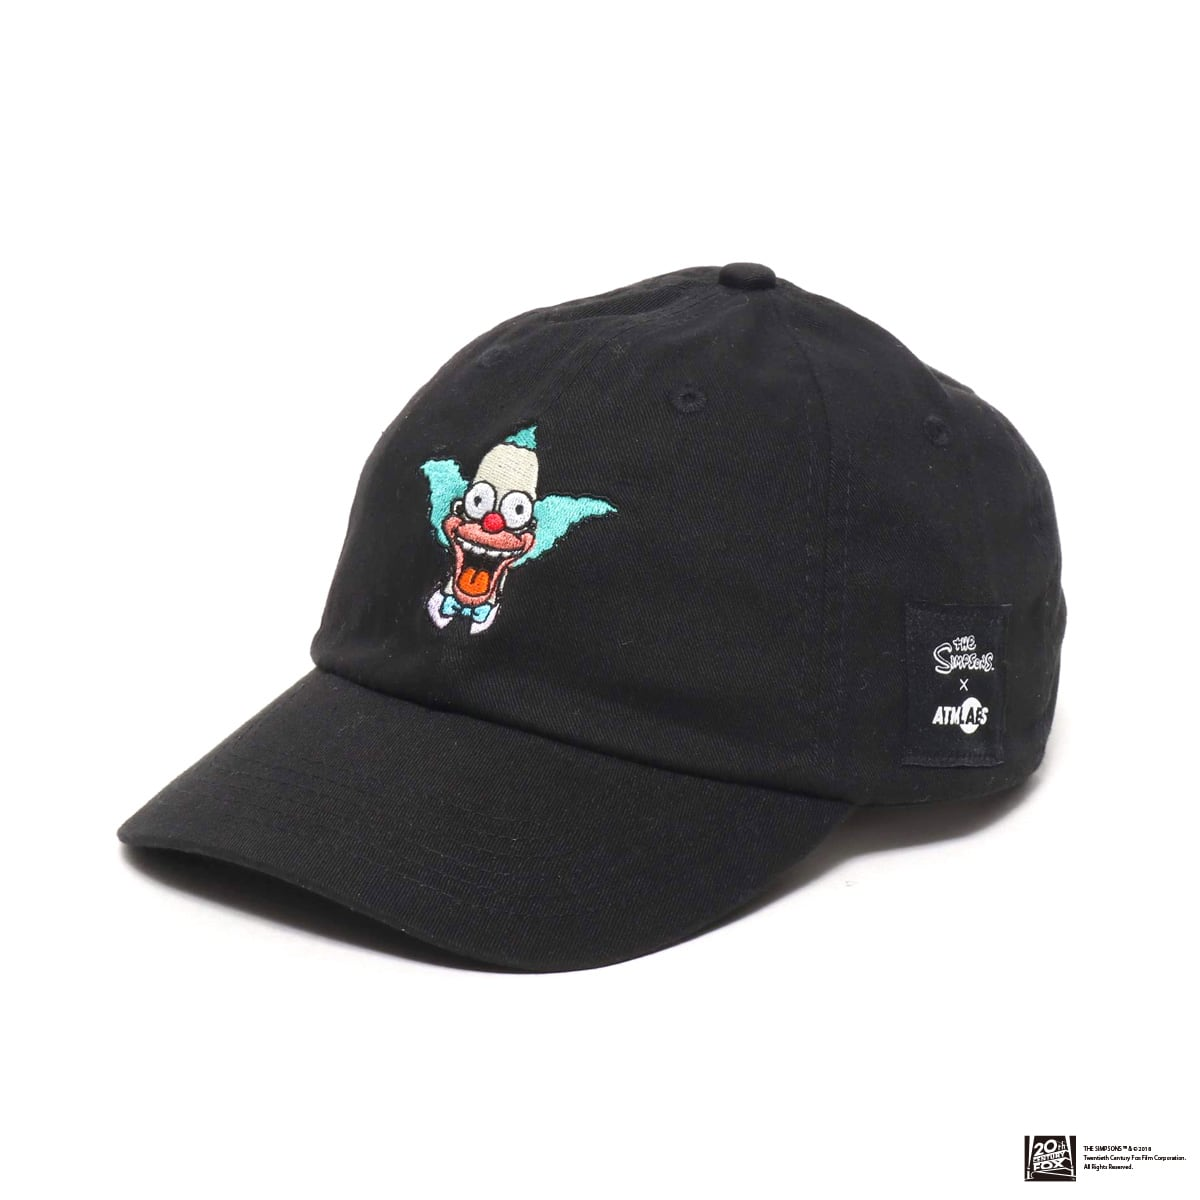 THE SIMPSONS x ATMOS LAB KRUSTY EMBROIDERY 6 PANEL CAP  BLACK 18FW-I_photo_large